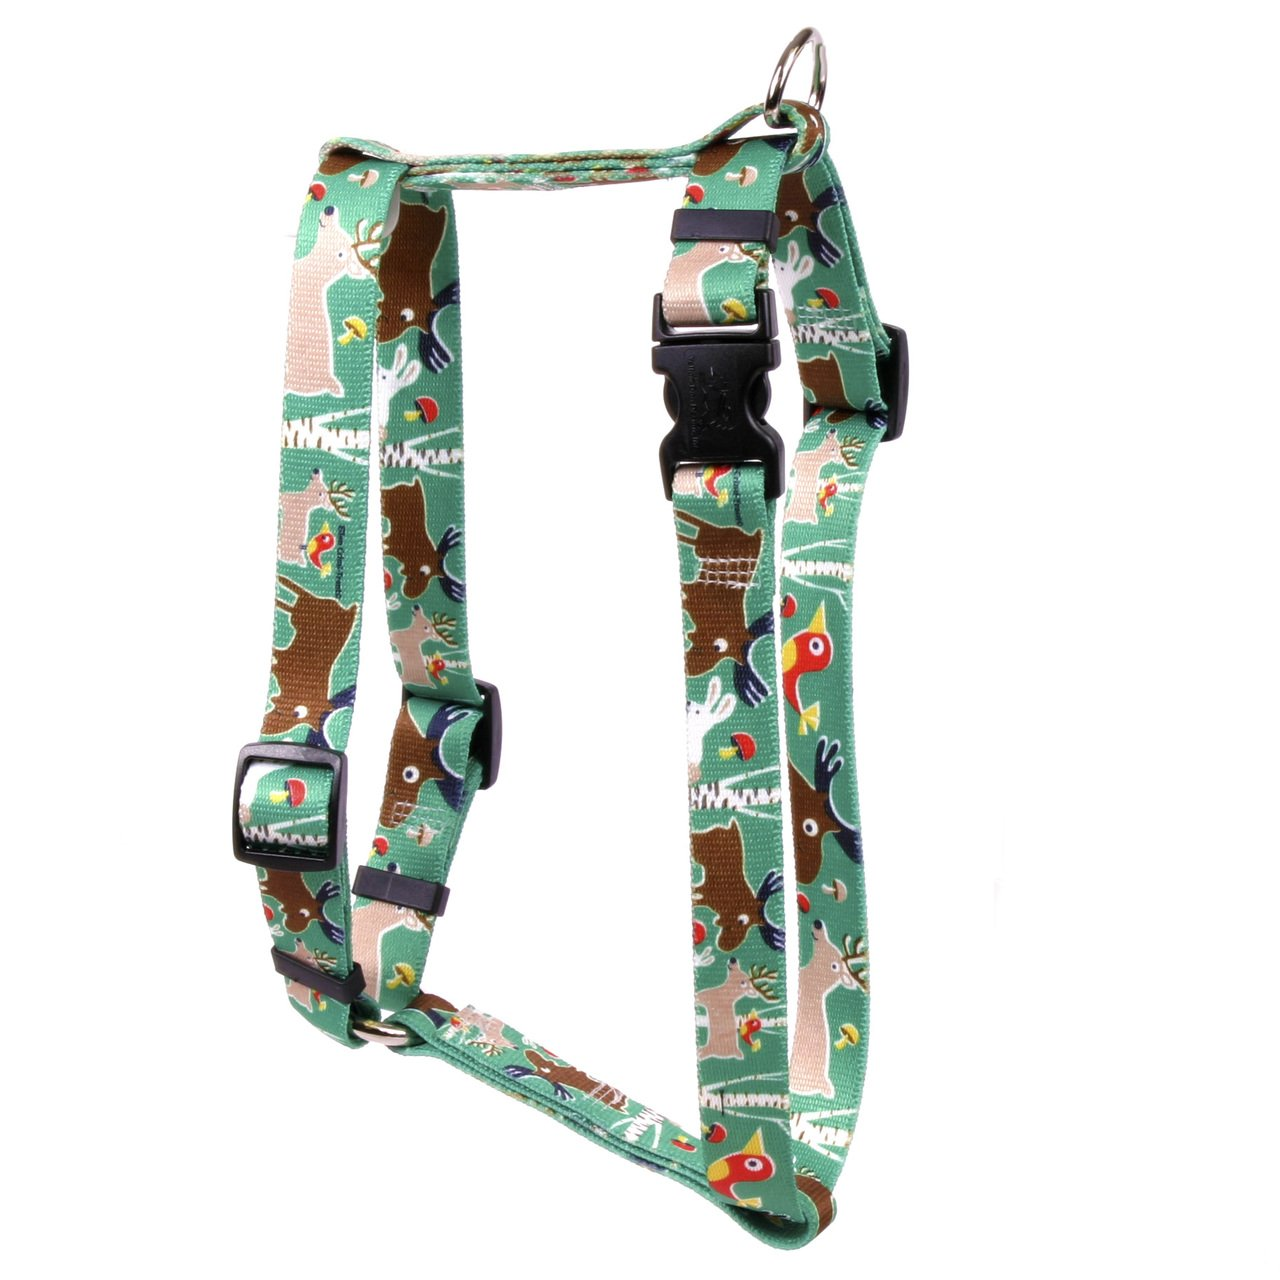 Yellow Dog Design Woodland Friends Roman Style H Dog Harness-X-Large-1'' and fits Chest 28 to 36''